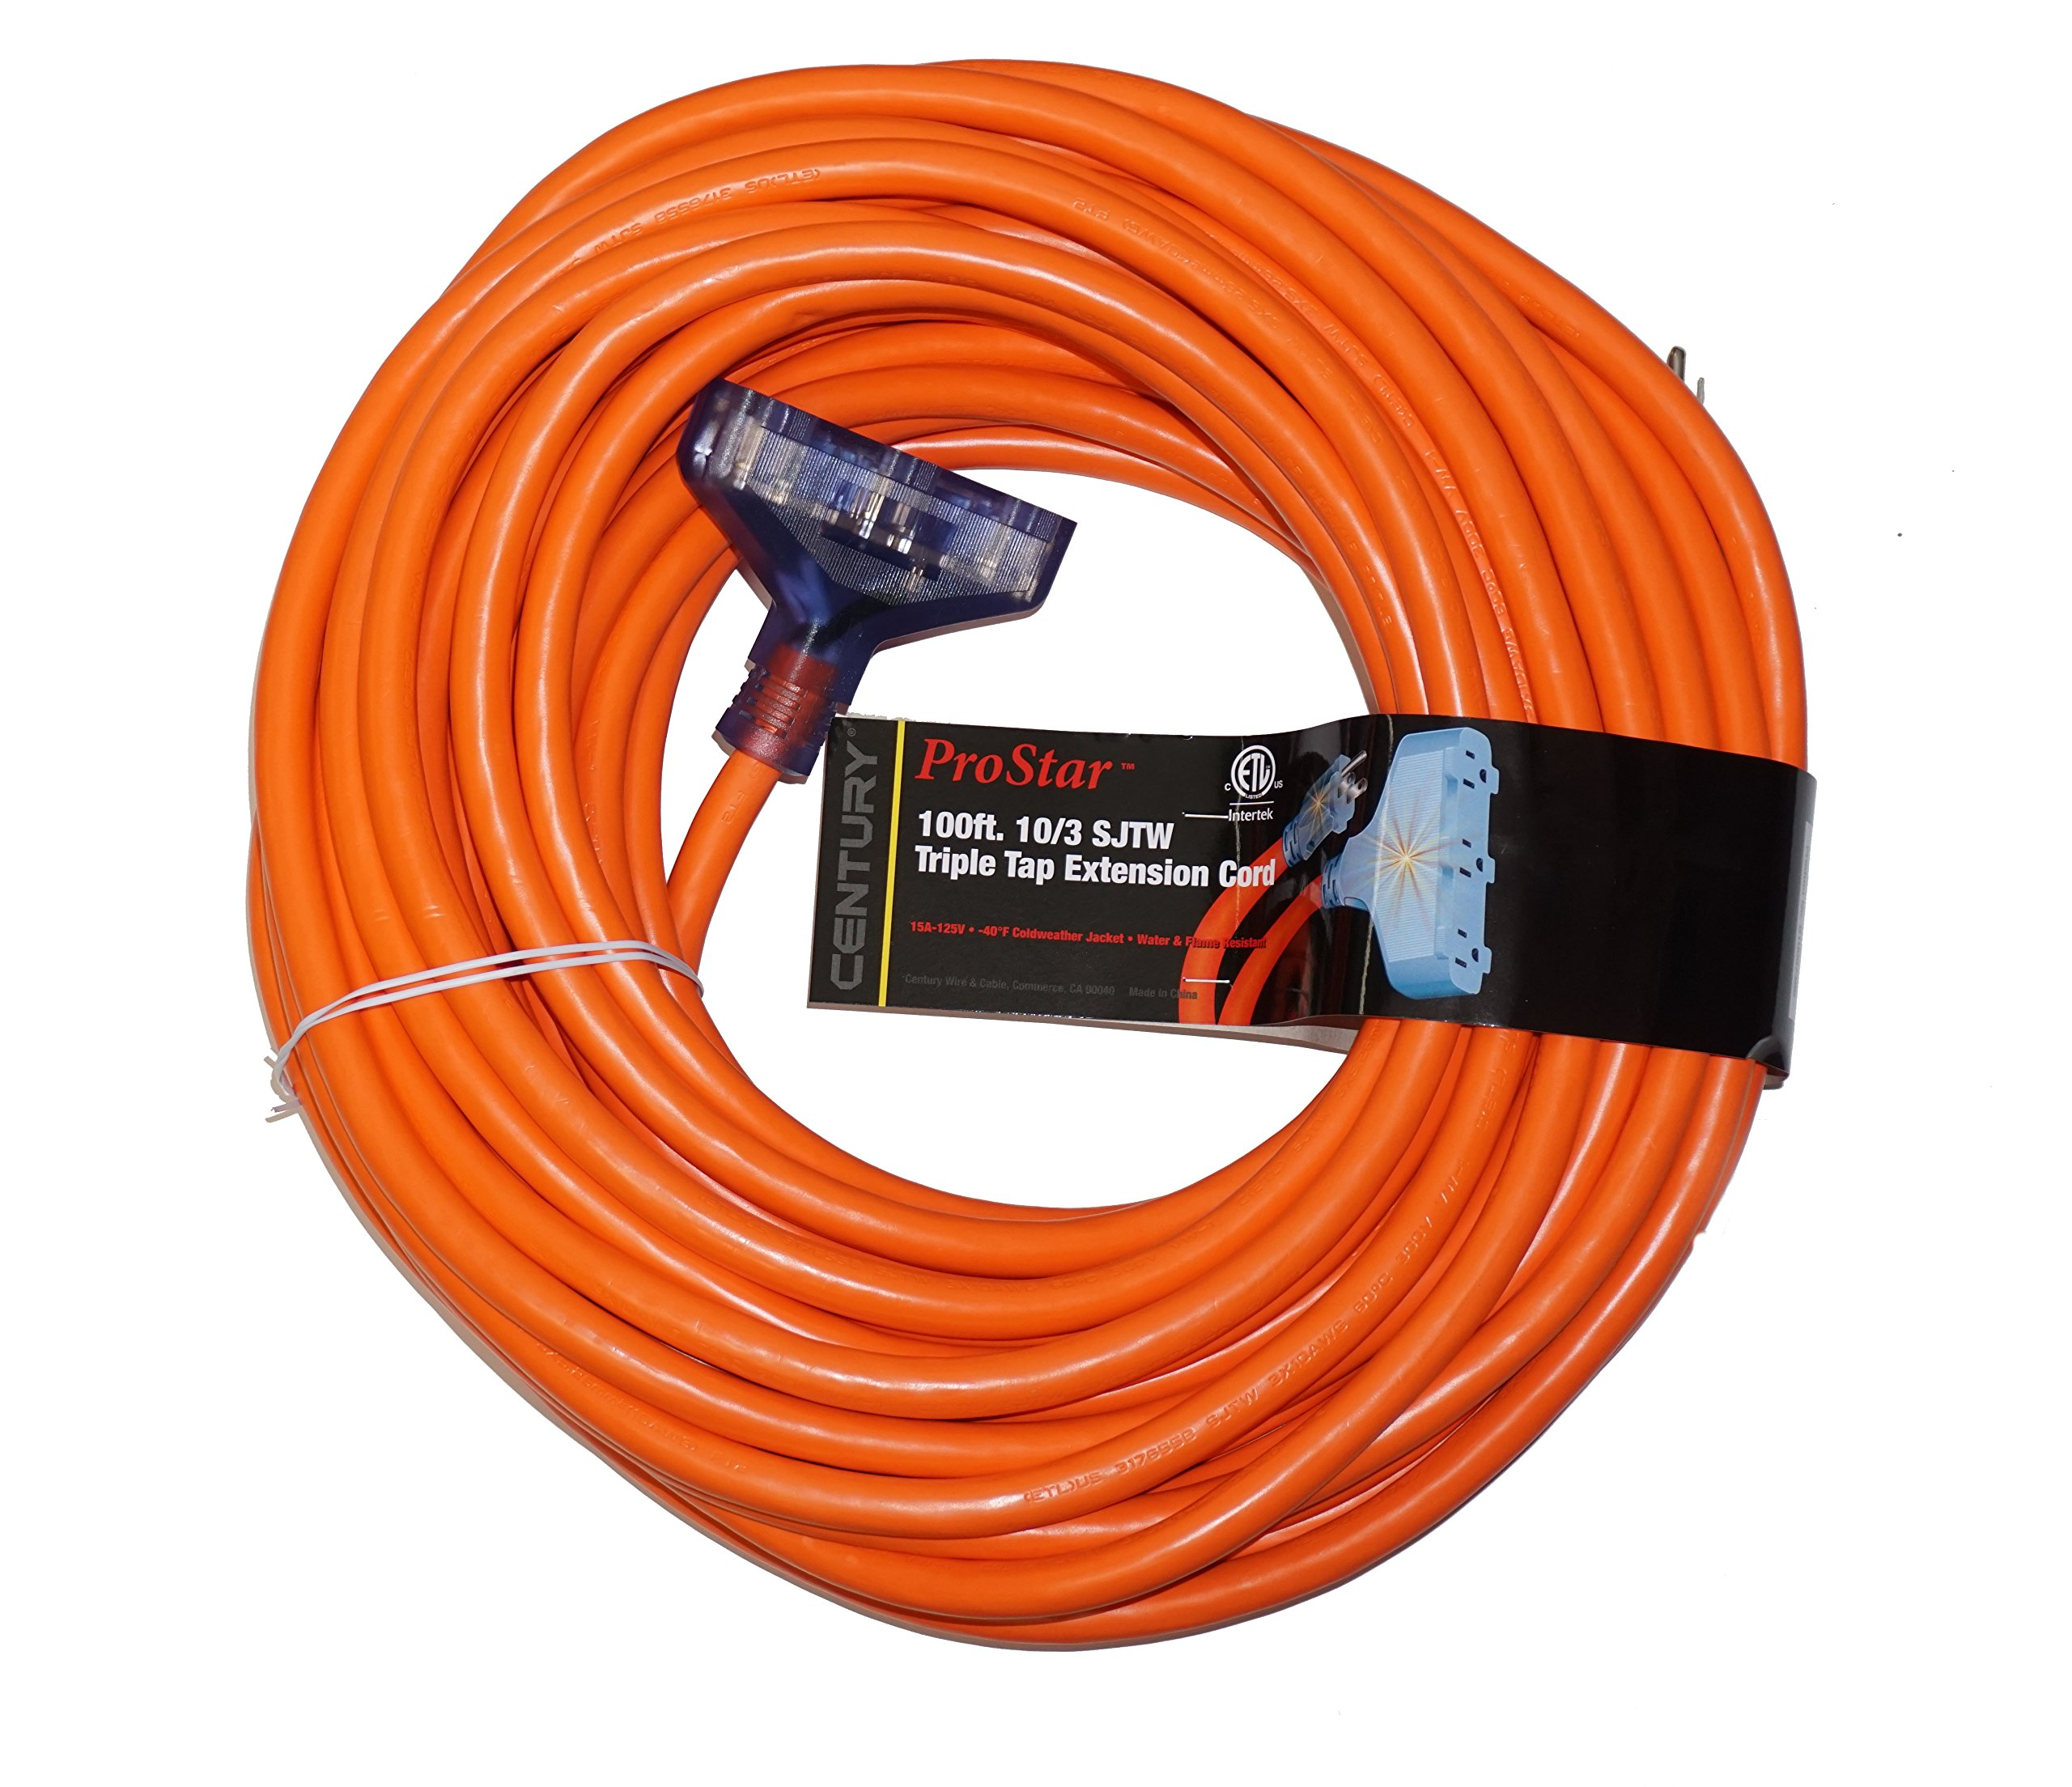 ProStar 100 Foot 10 Gauge SJTW 3 Conductor Triple Tap Extension Cord With Lighted Ends - Orange by Century (Image #1)